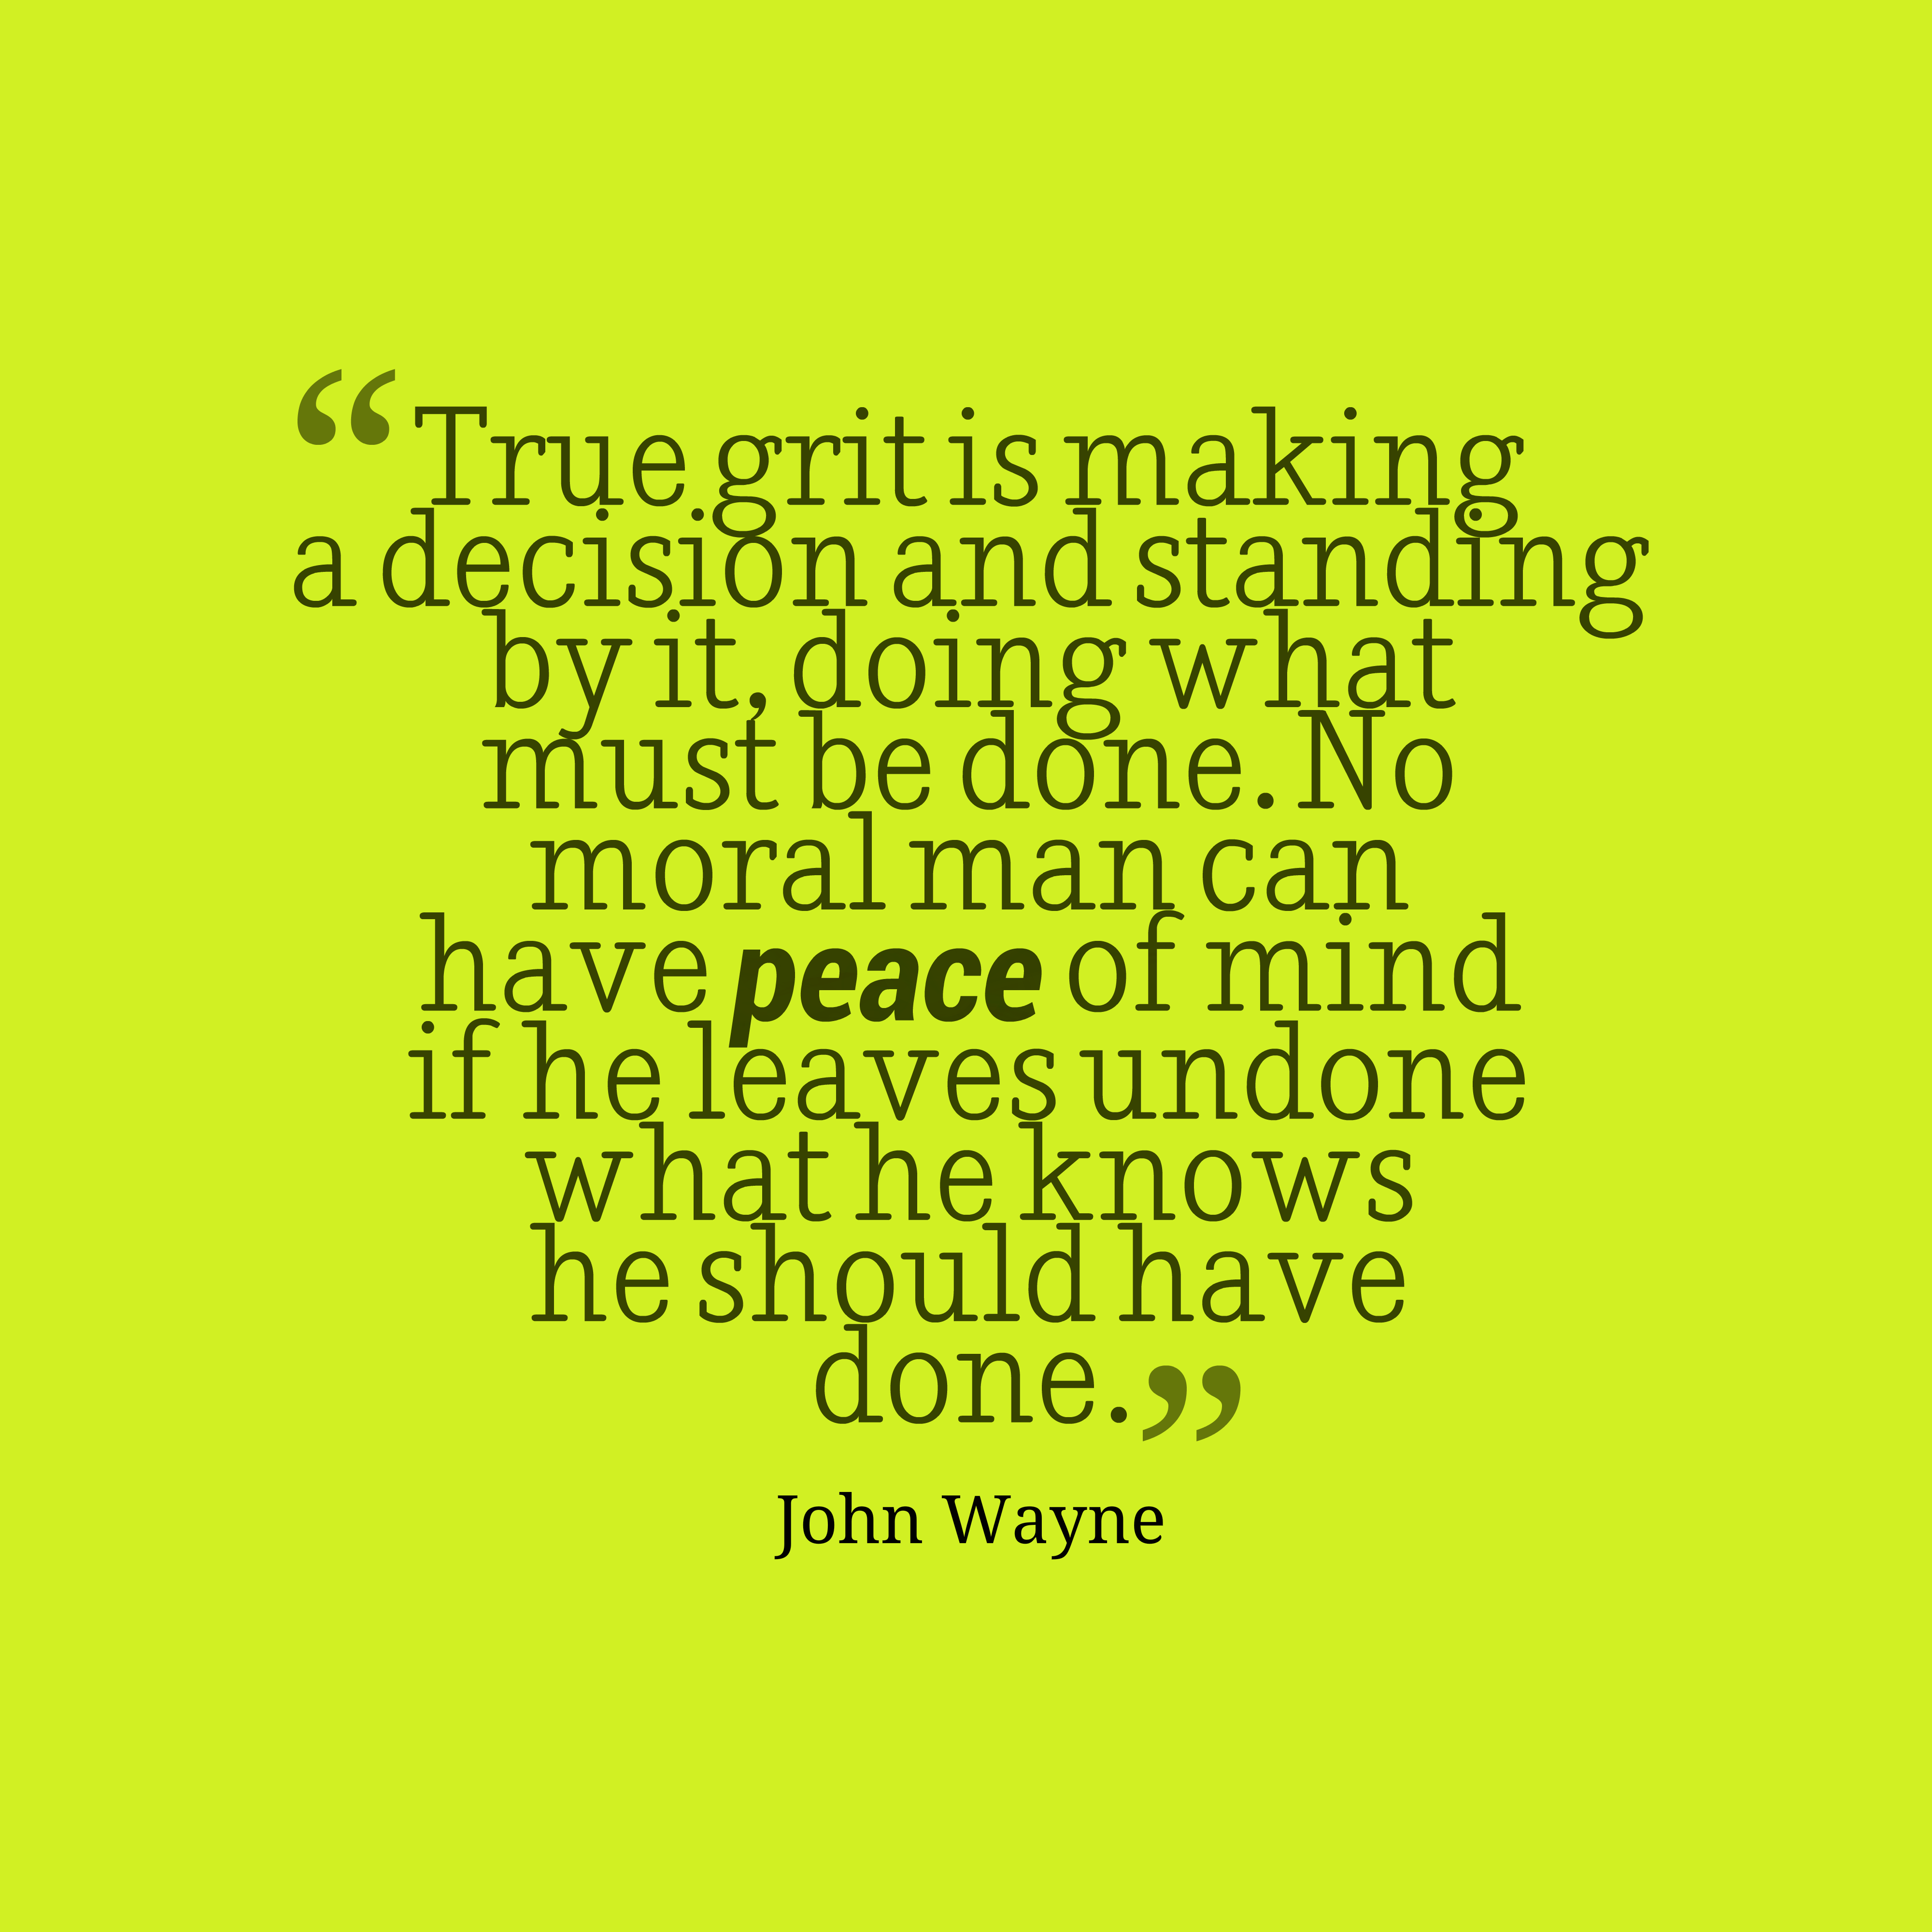 Quotes image of True grit is making a decision and standing by it, doing what must be done. No moral man can have peace of mind if he leaves undone what he knows he should have done.